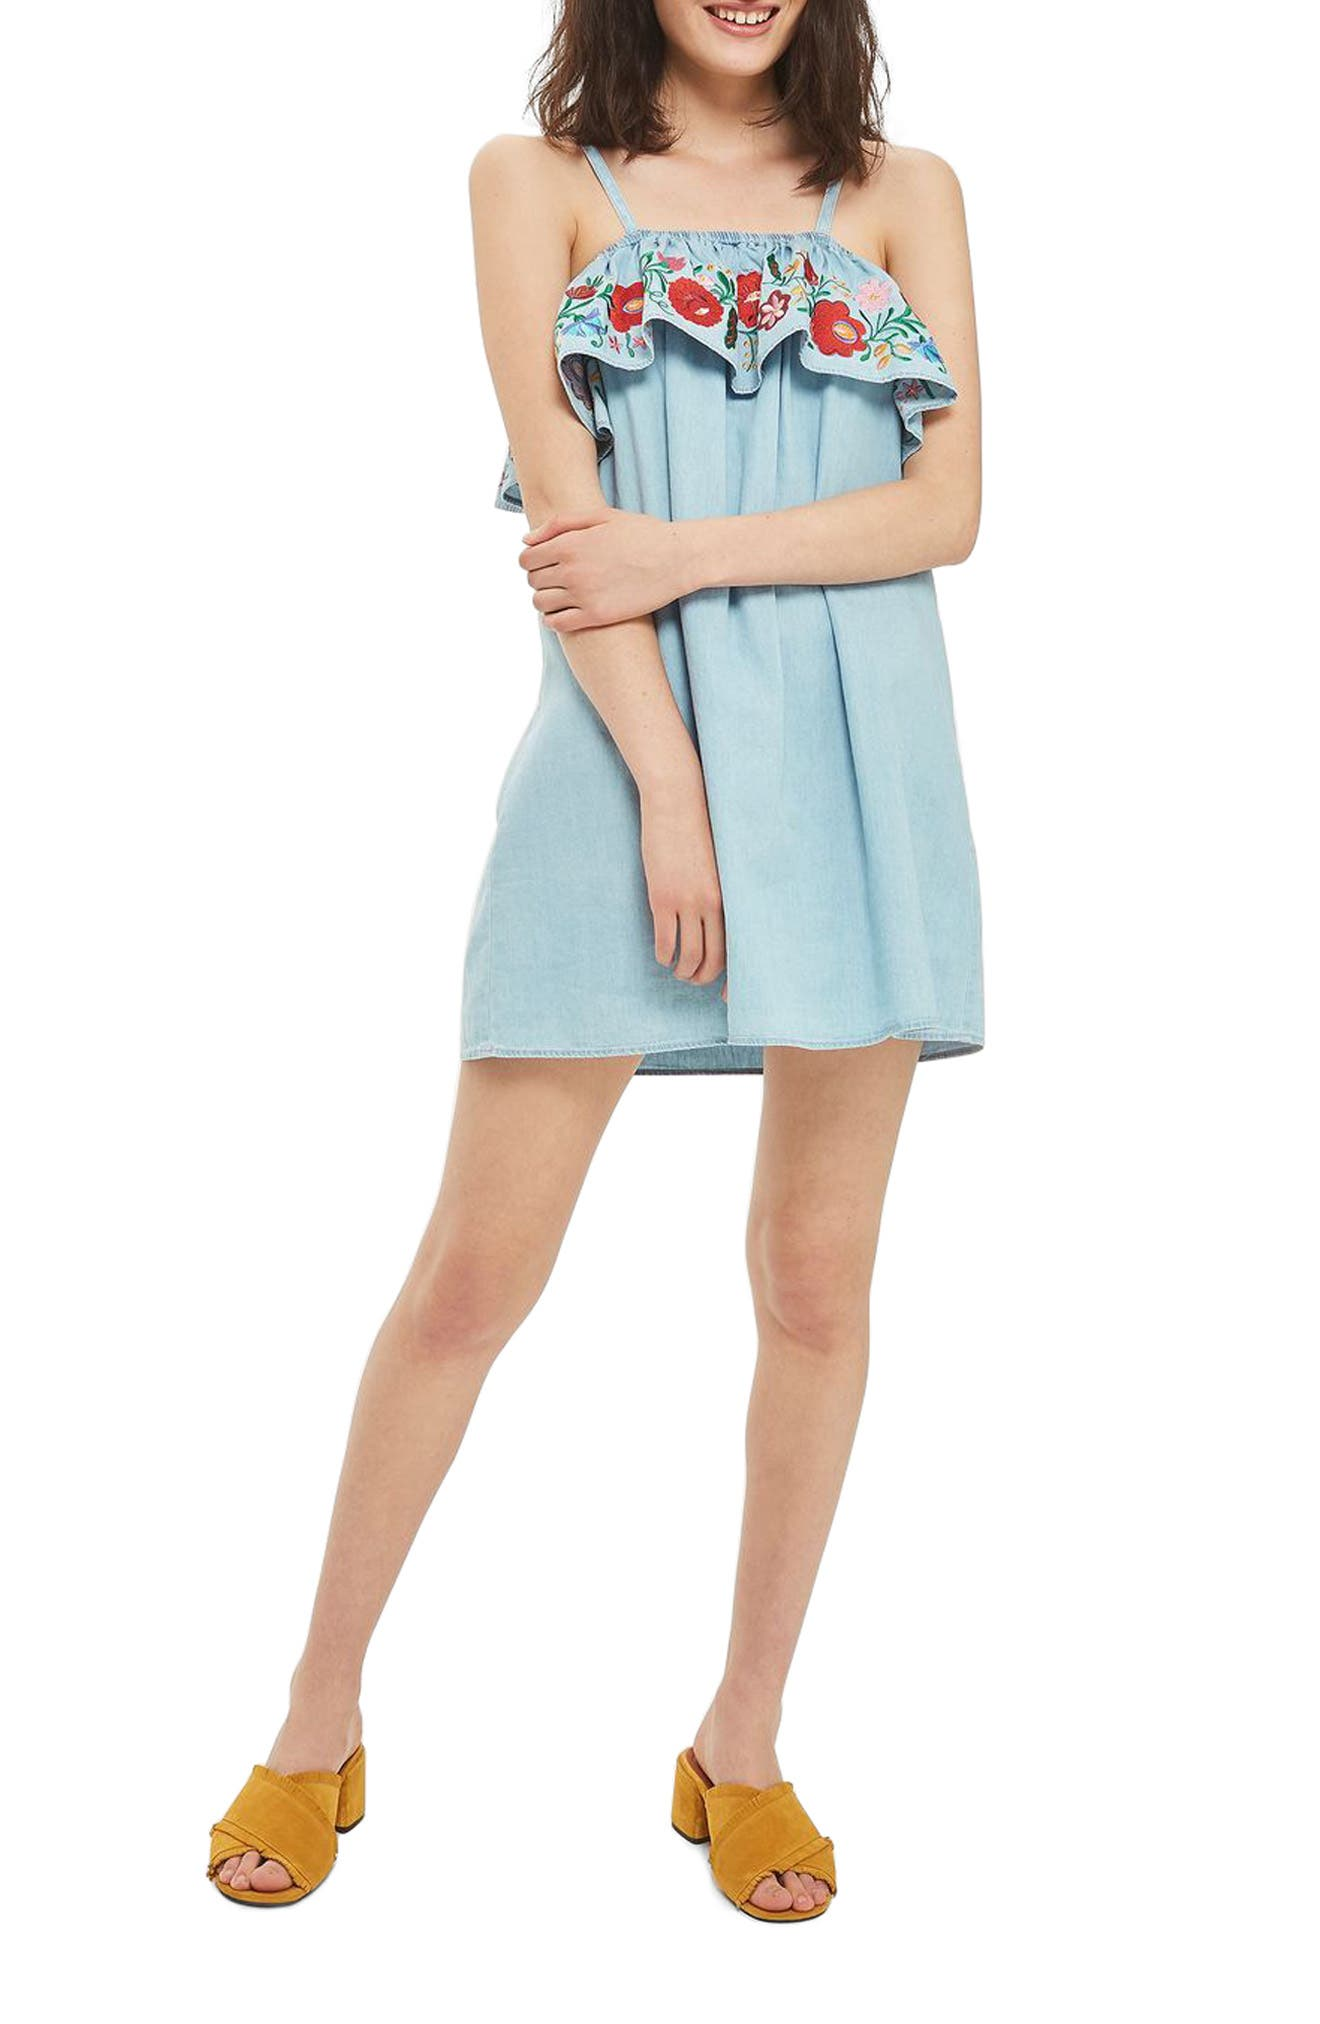 Topshop Embroidered Ruffle Shift Dress